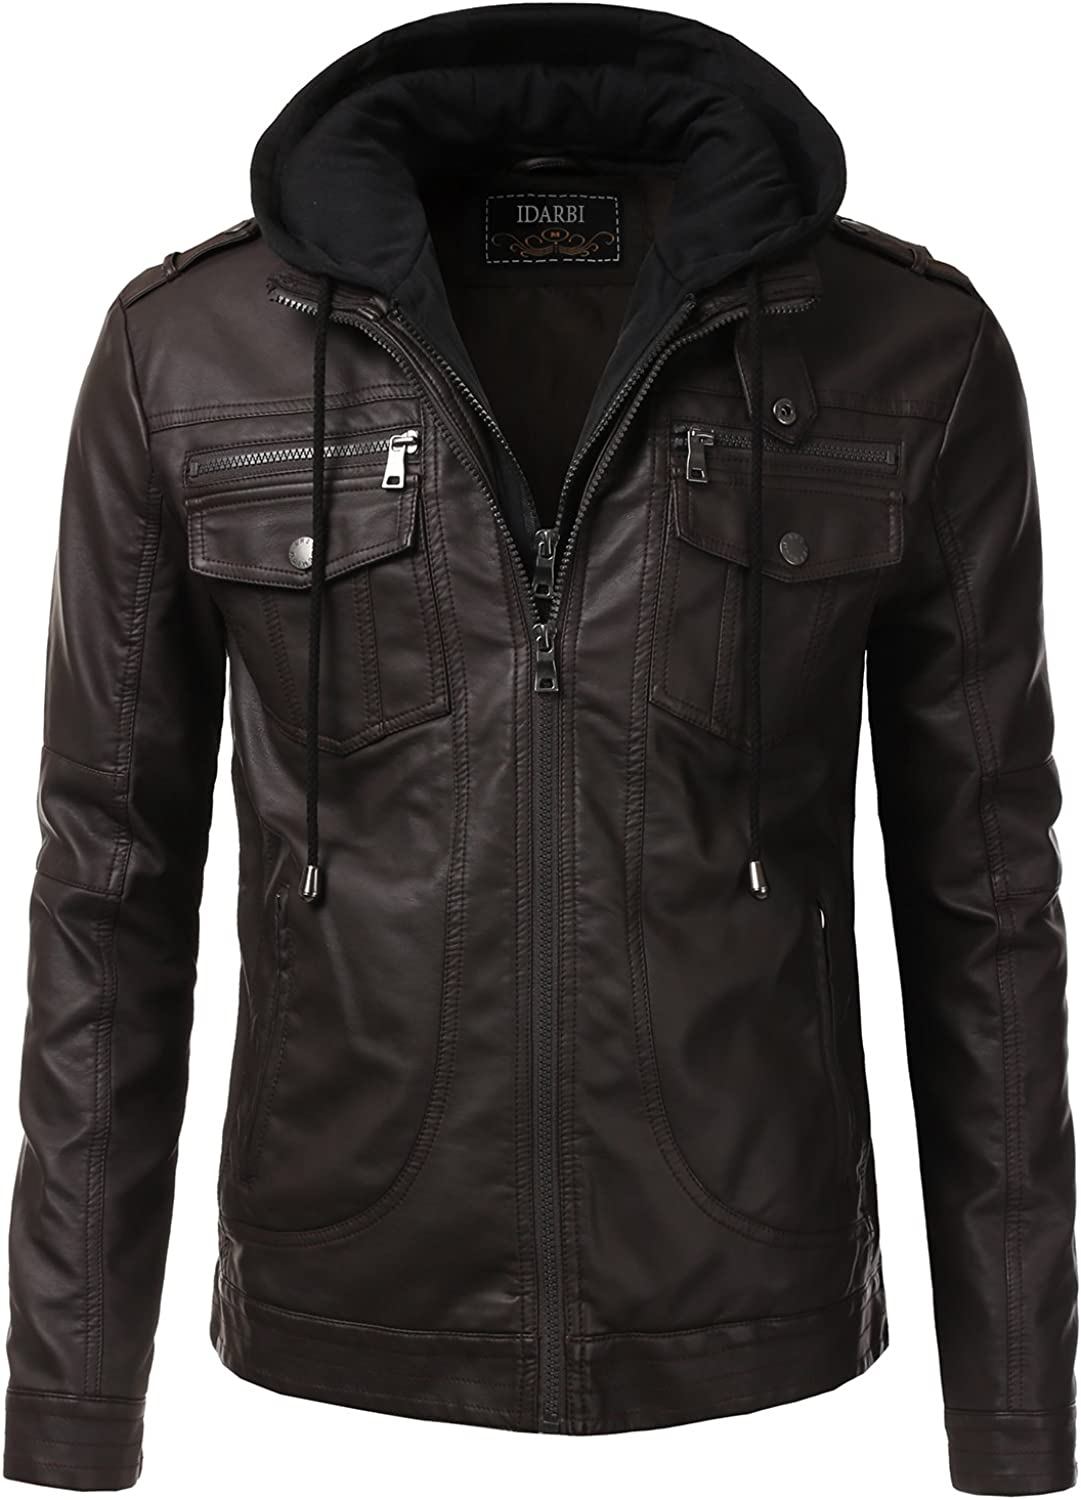 IDARBI Mens Premium Leather Bomber Jacket with Quilted Detail